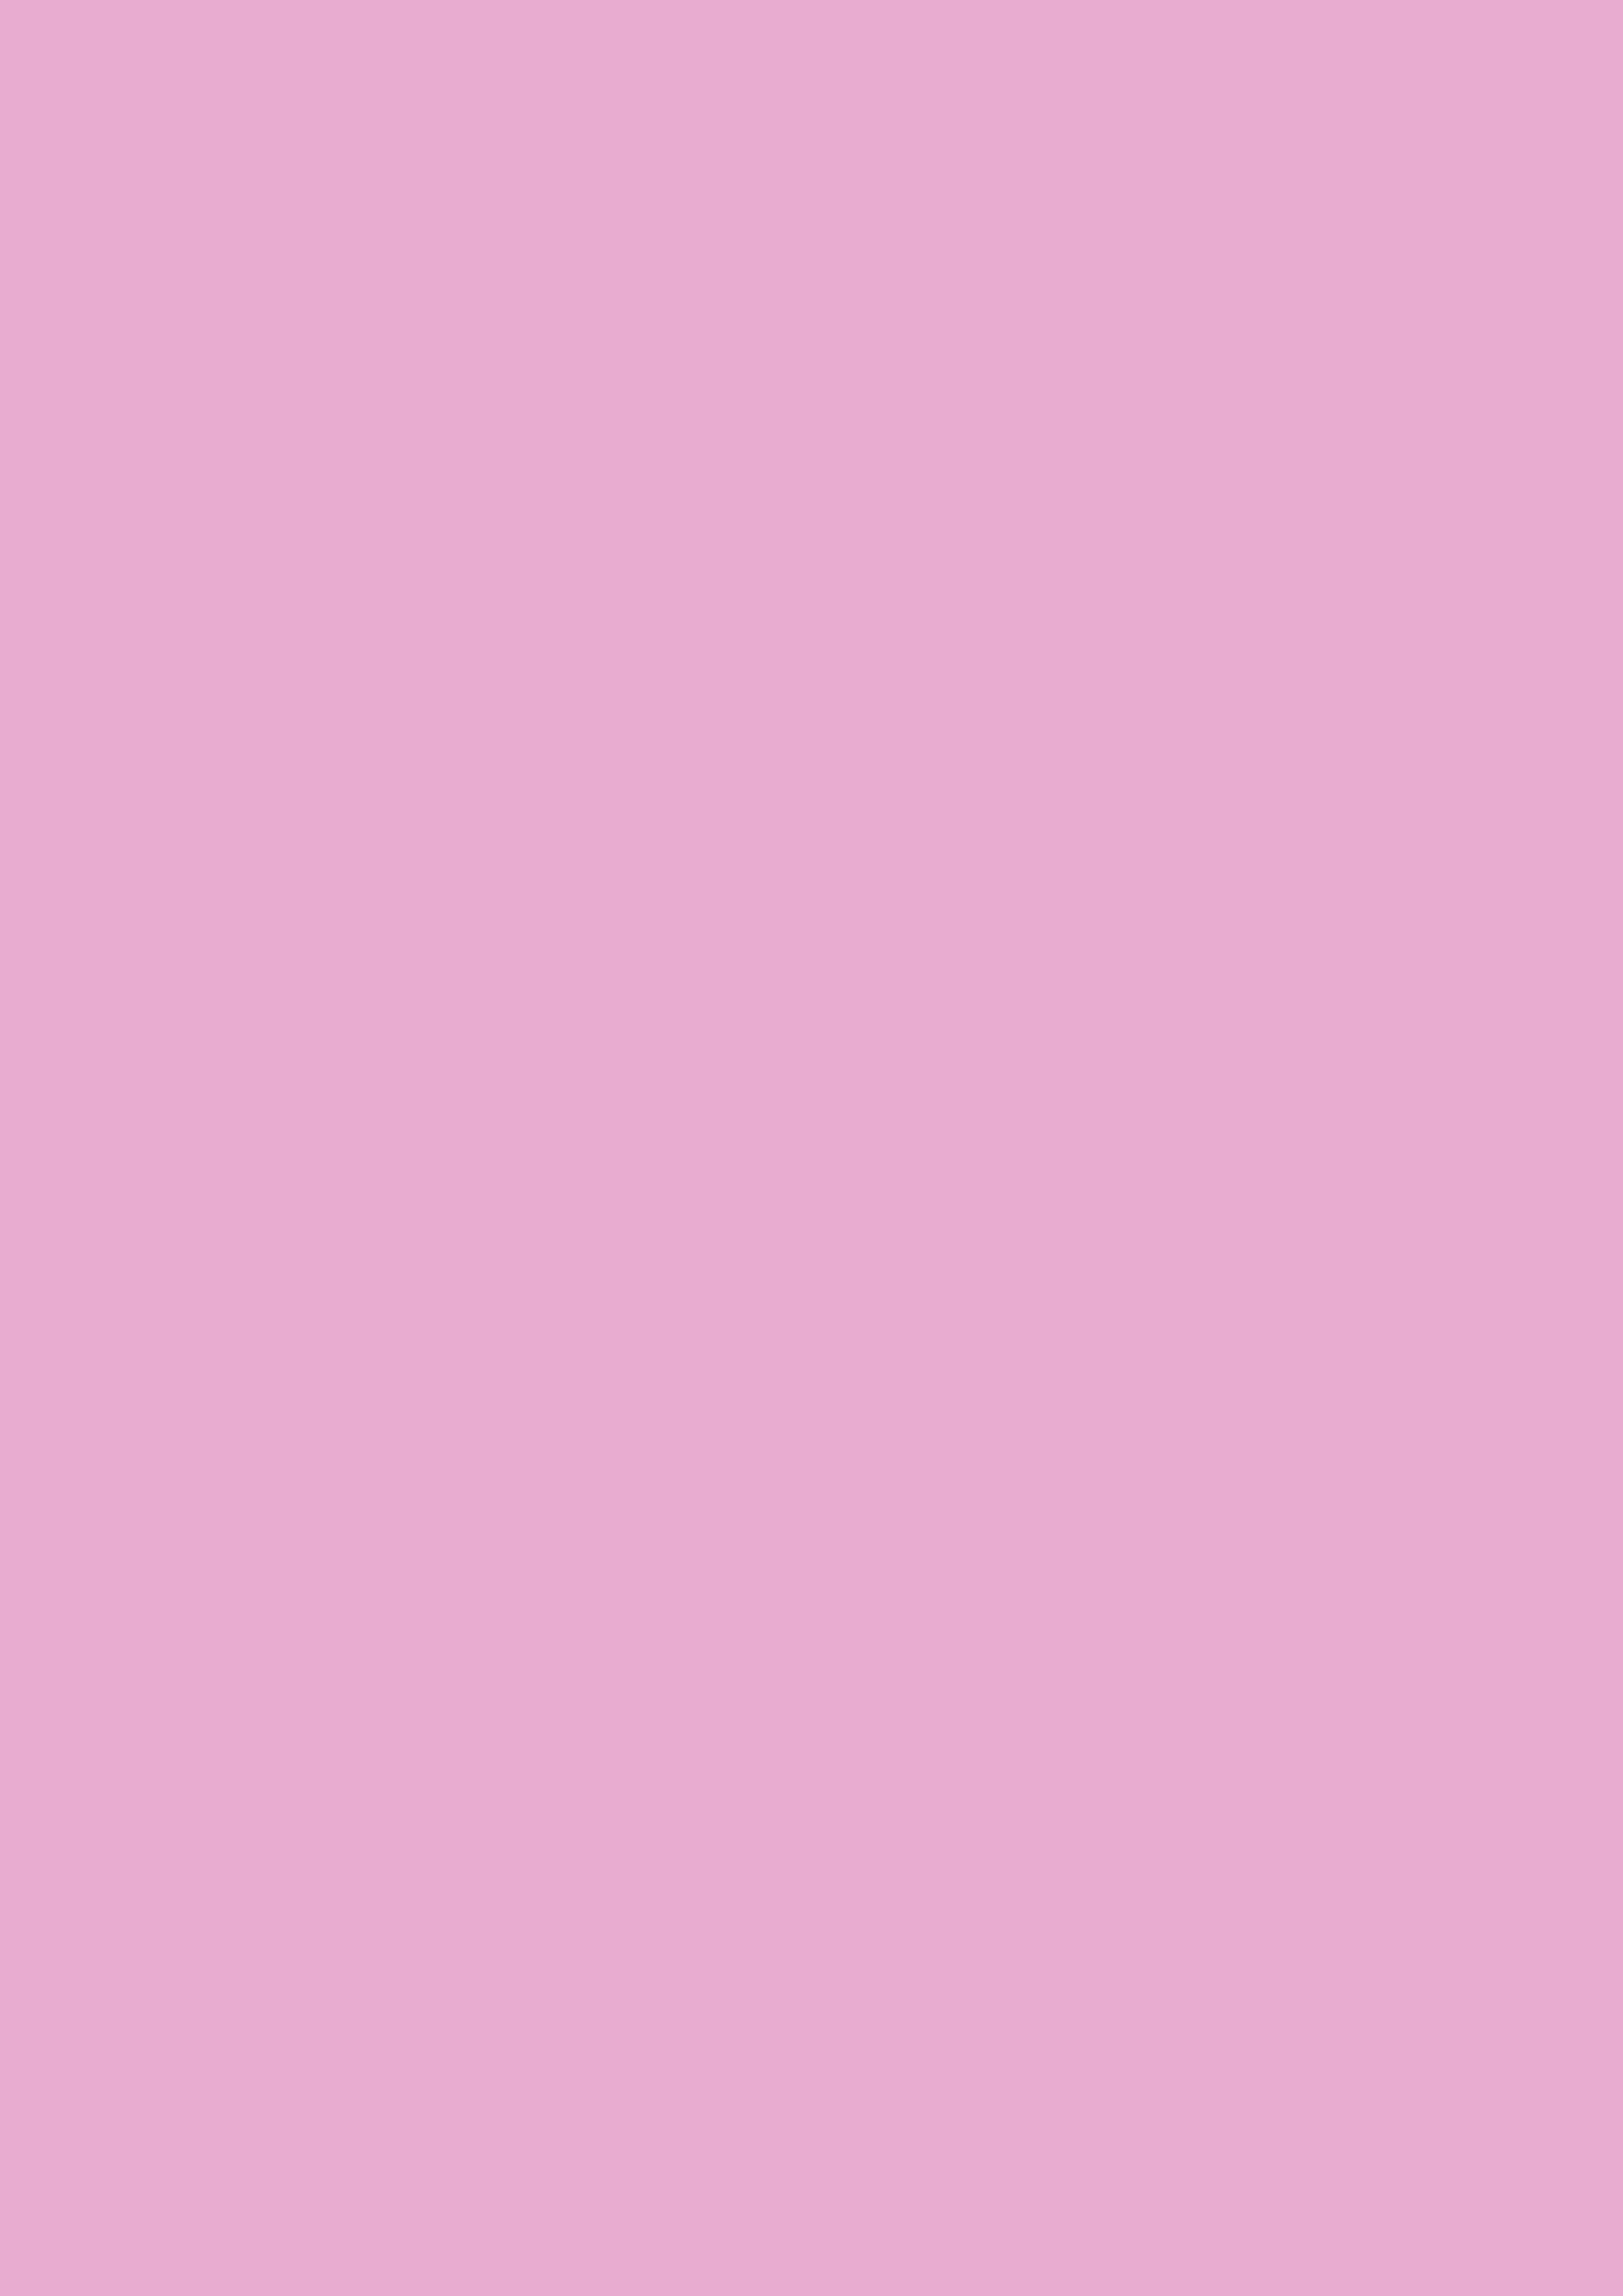 2480x3508 Pink Pearl Solid Color Background